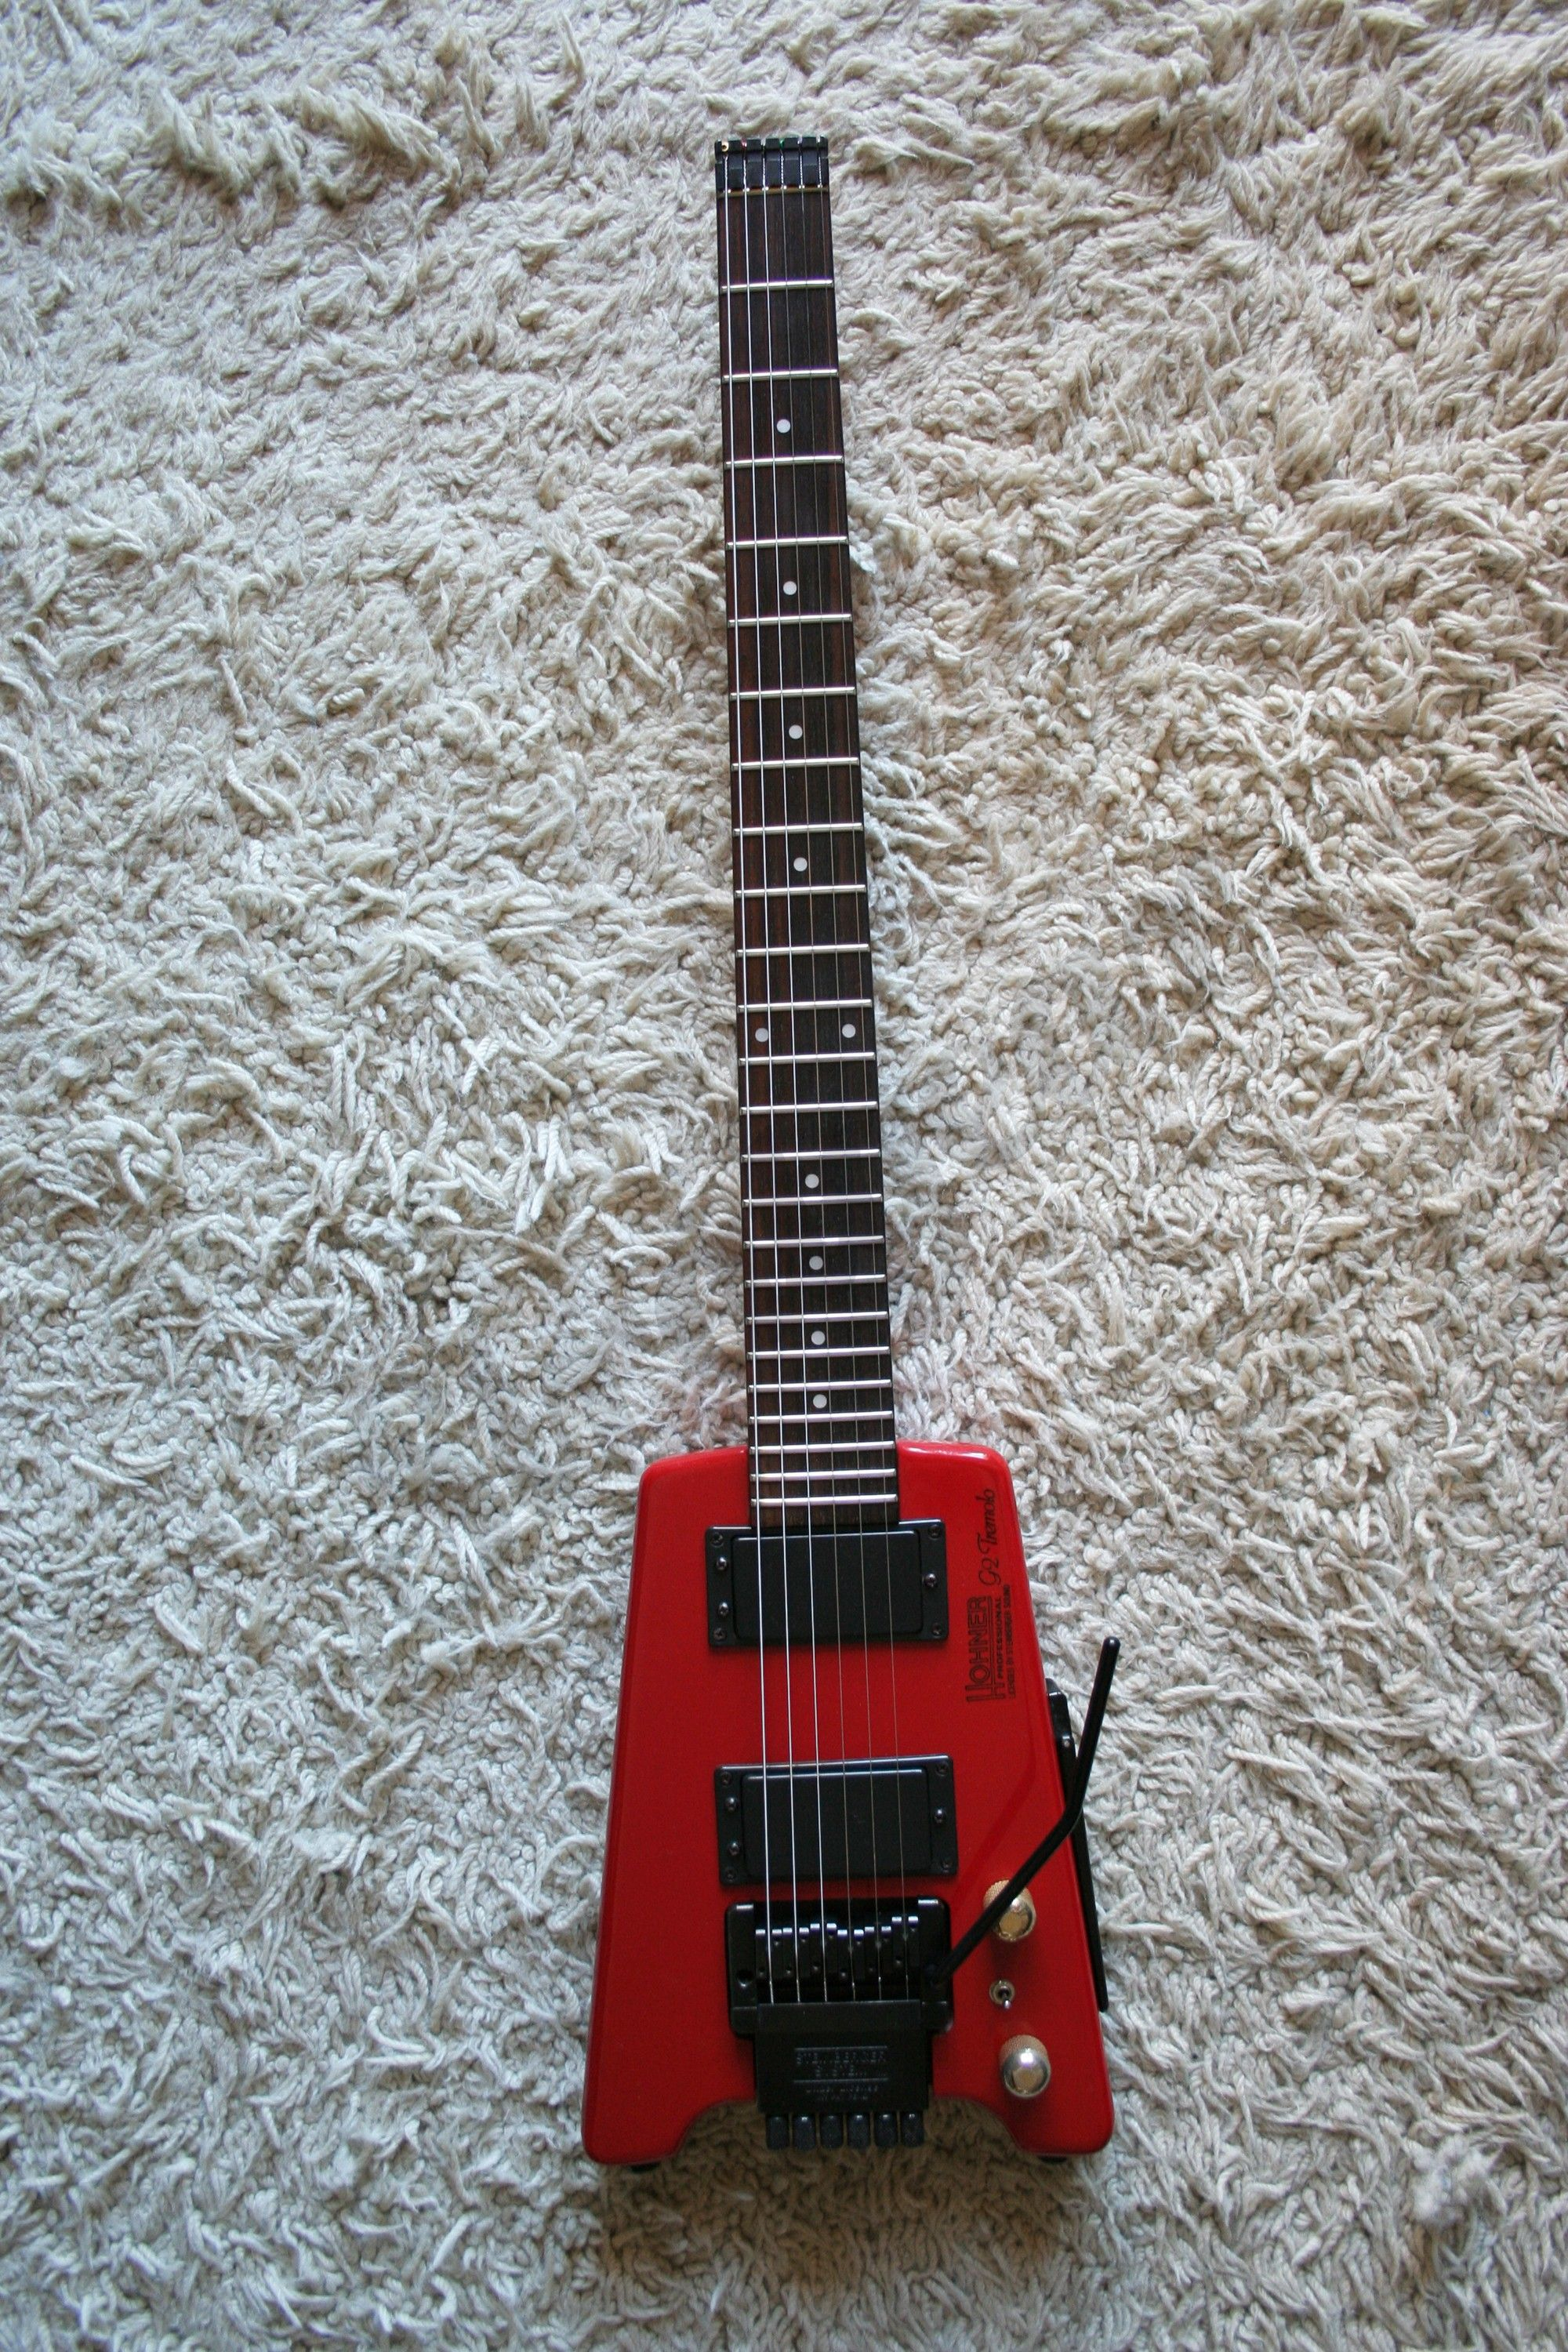 hohner g2 steinberger guitar google search 16fw moodboard guitar guitar amp unique guitars. Black Bedroom Furniture Sets. Home Design Ideas